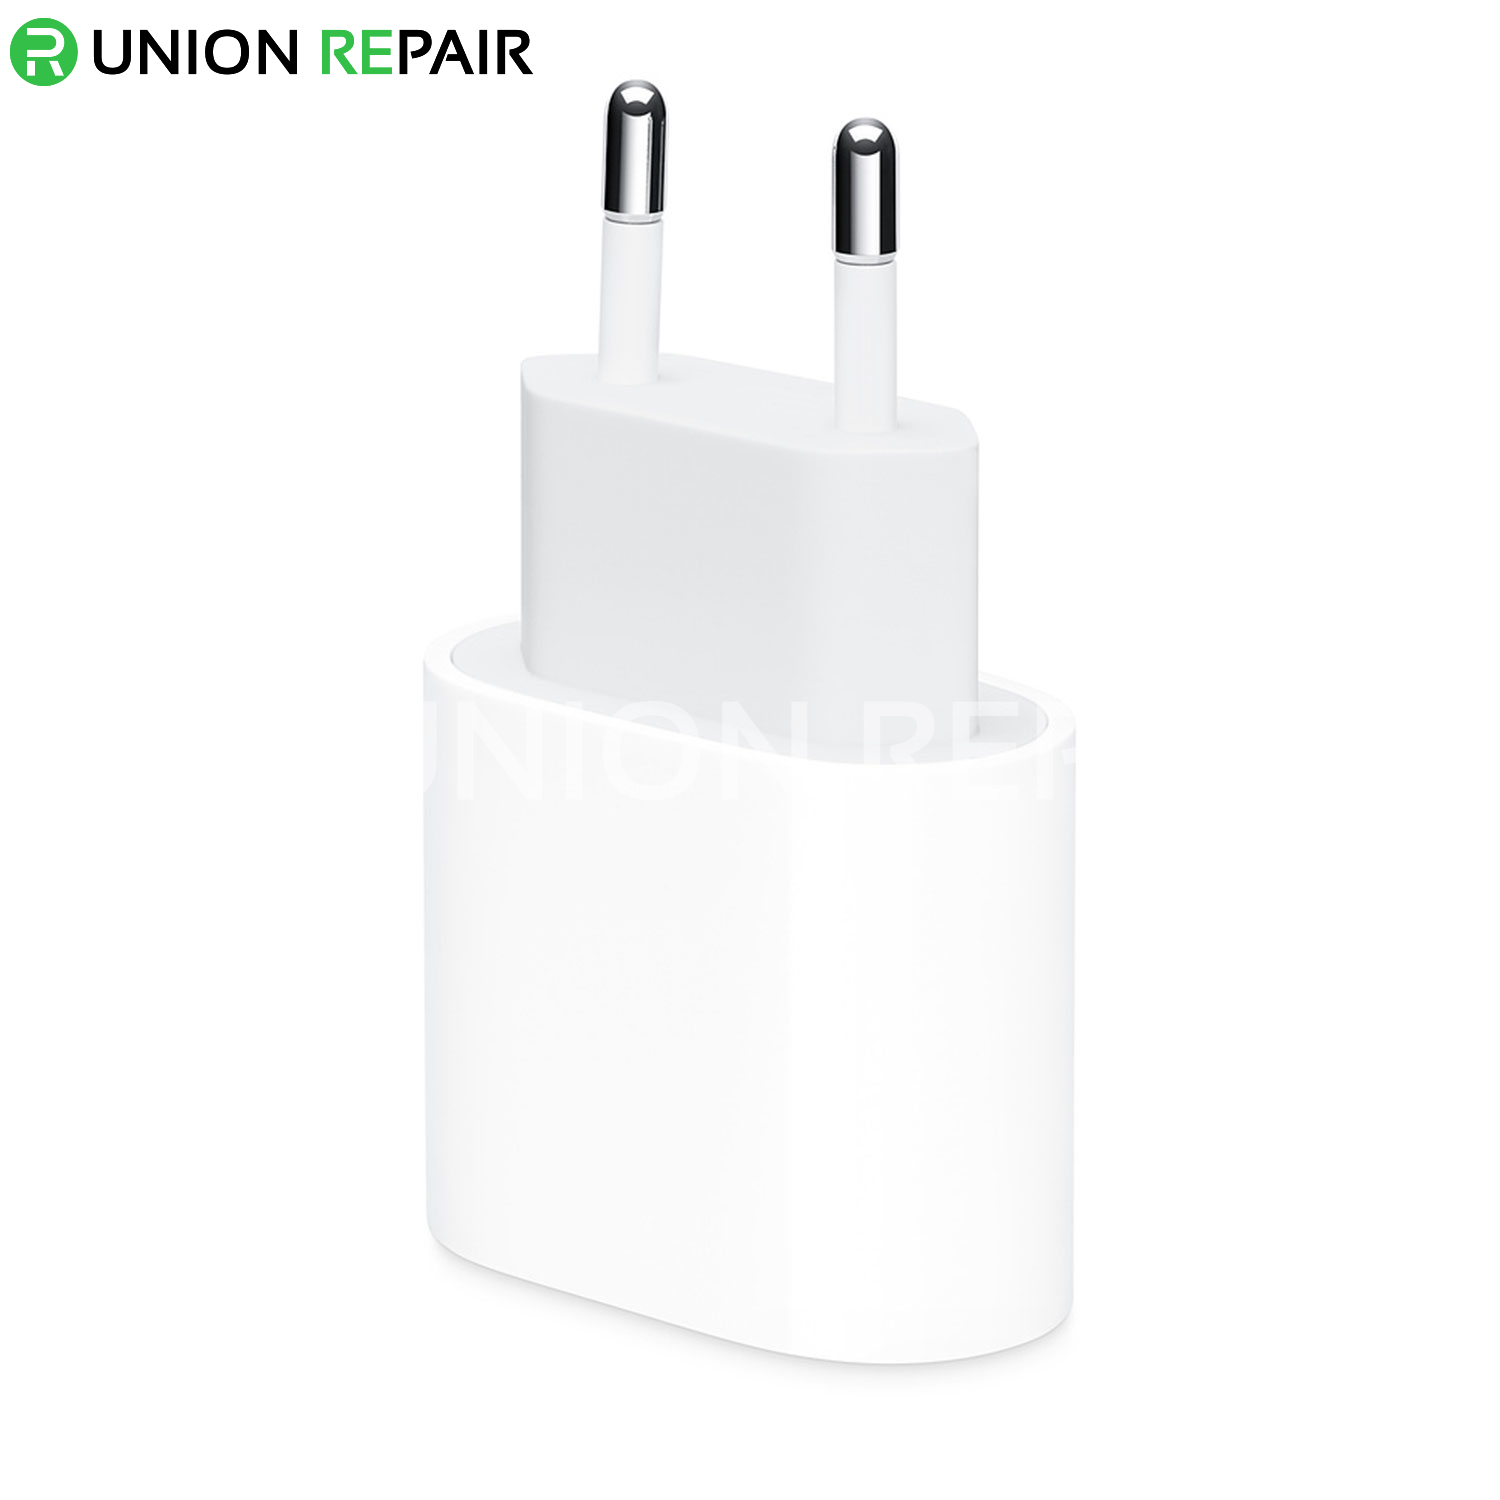 20W USB-C Power Adapter for iPhone - EU Version, fig. 1